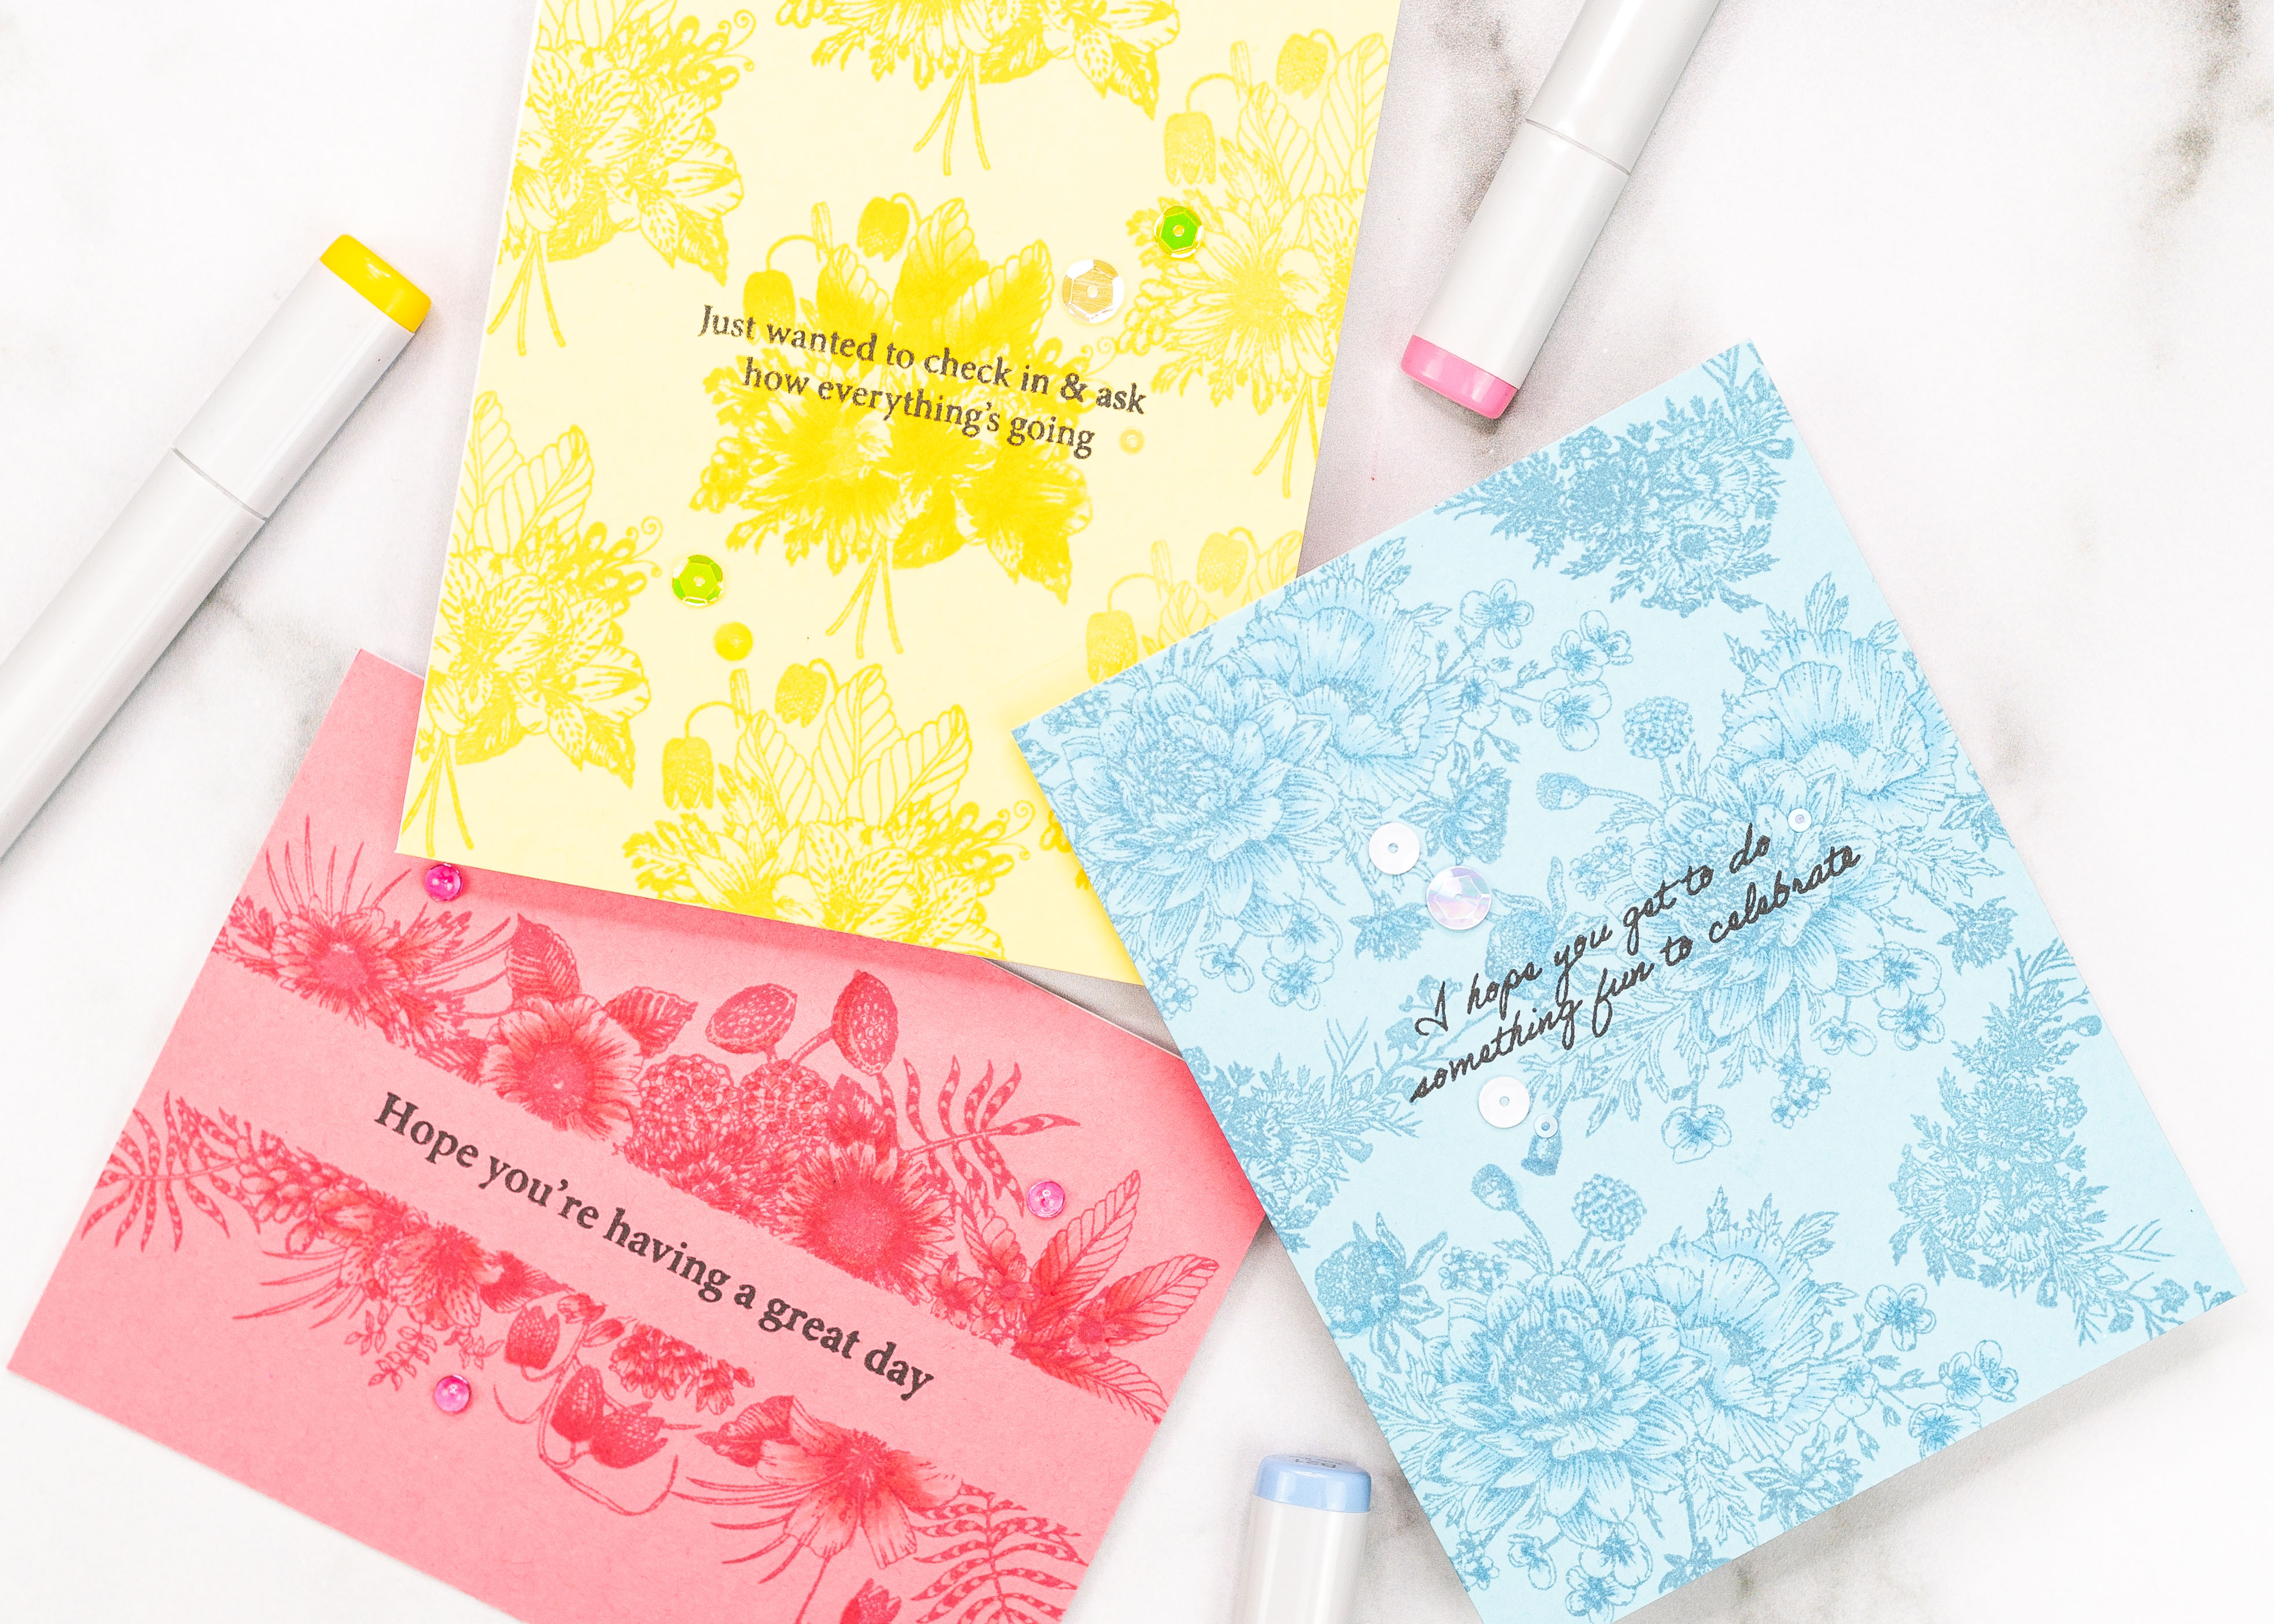 Clean and Simple Tone on Tone Cards with Jenny Colacicco